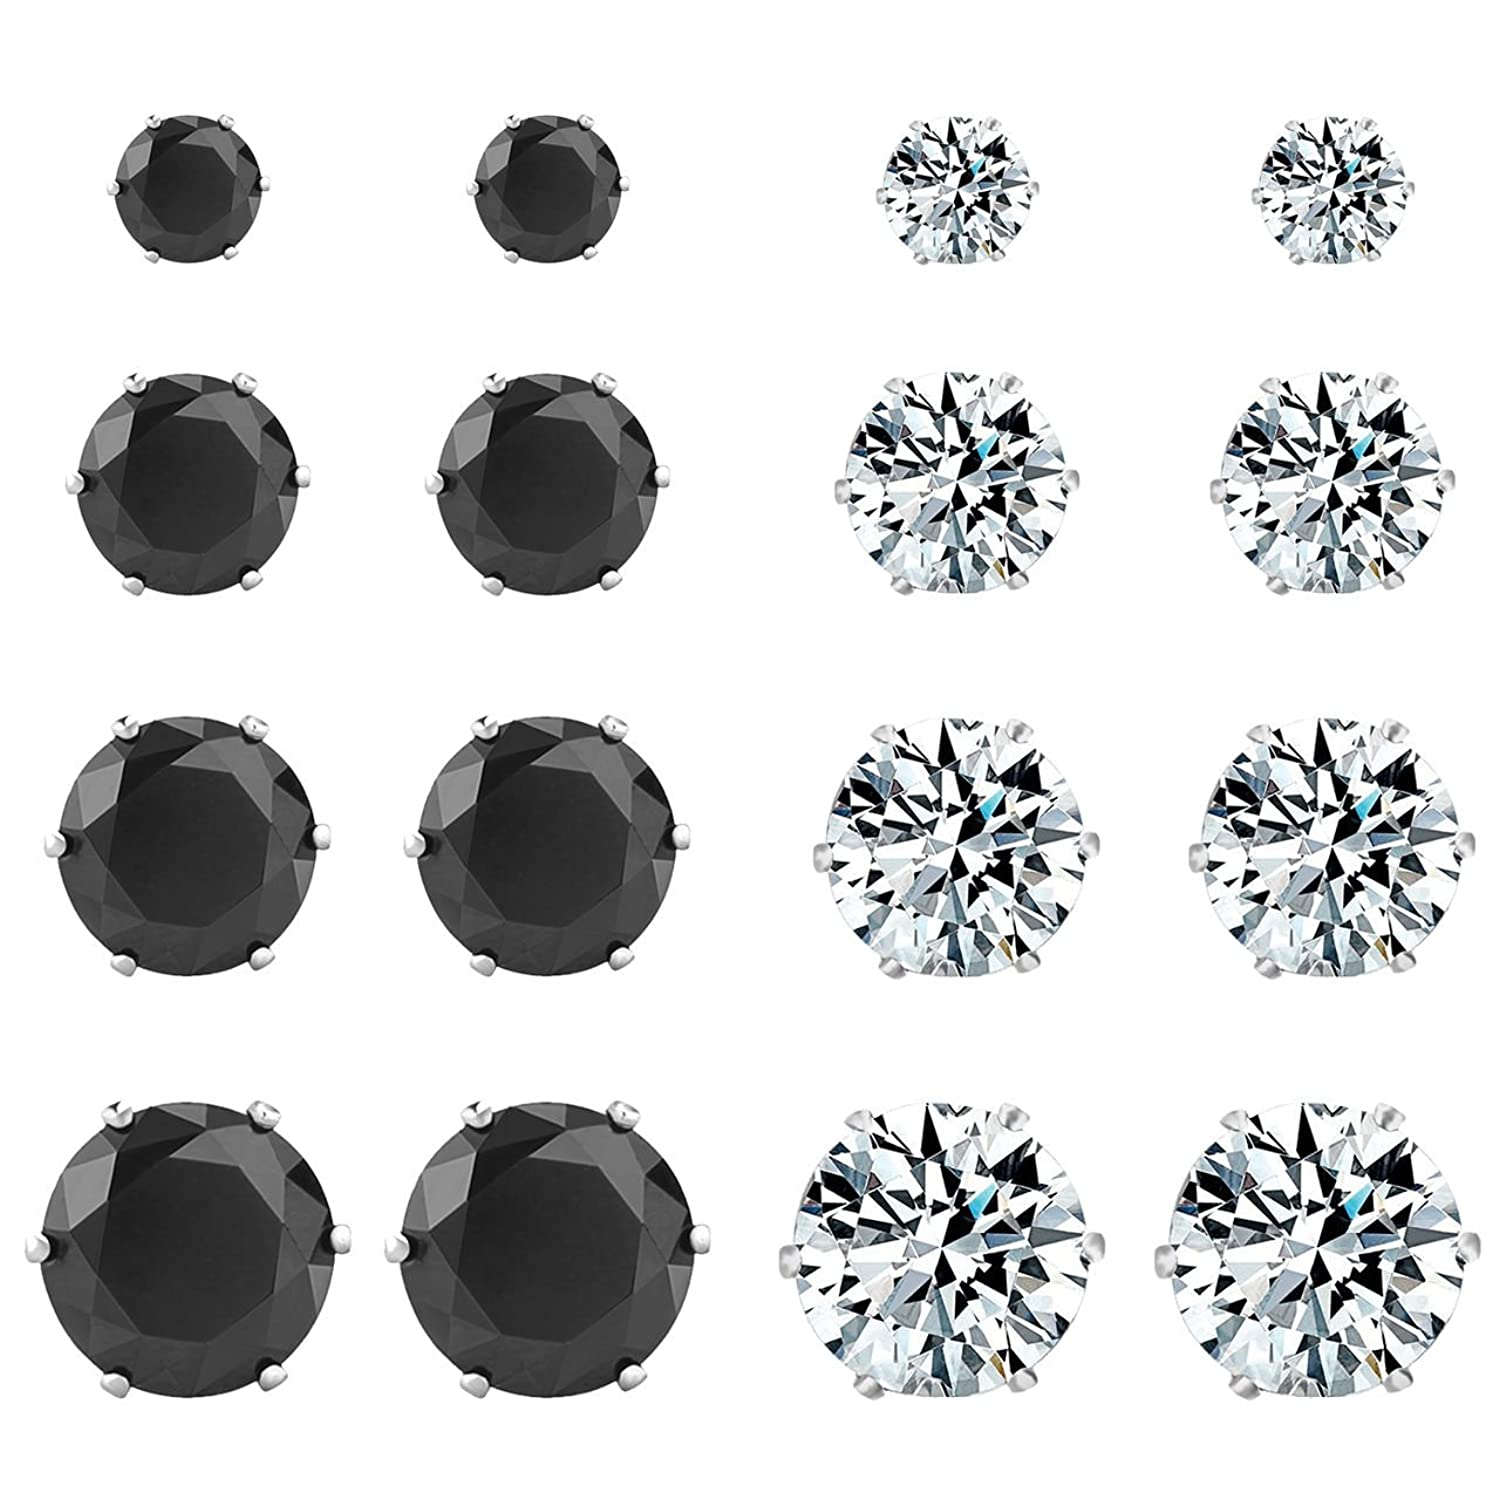 s women dp areke steel cubic white amazon com zirconia color pairs earring free nickel rhinestone hypoallergenic round stainless black stud jewelry